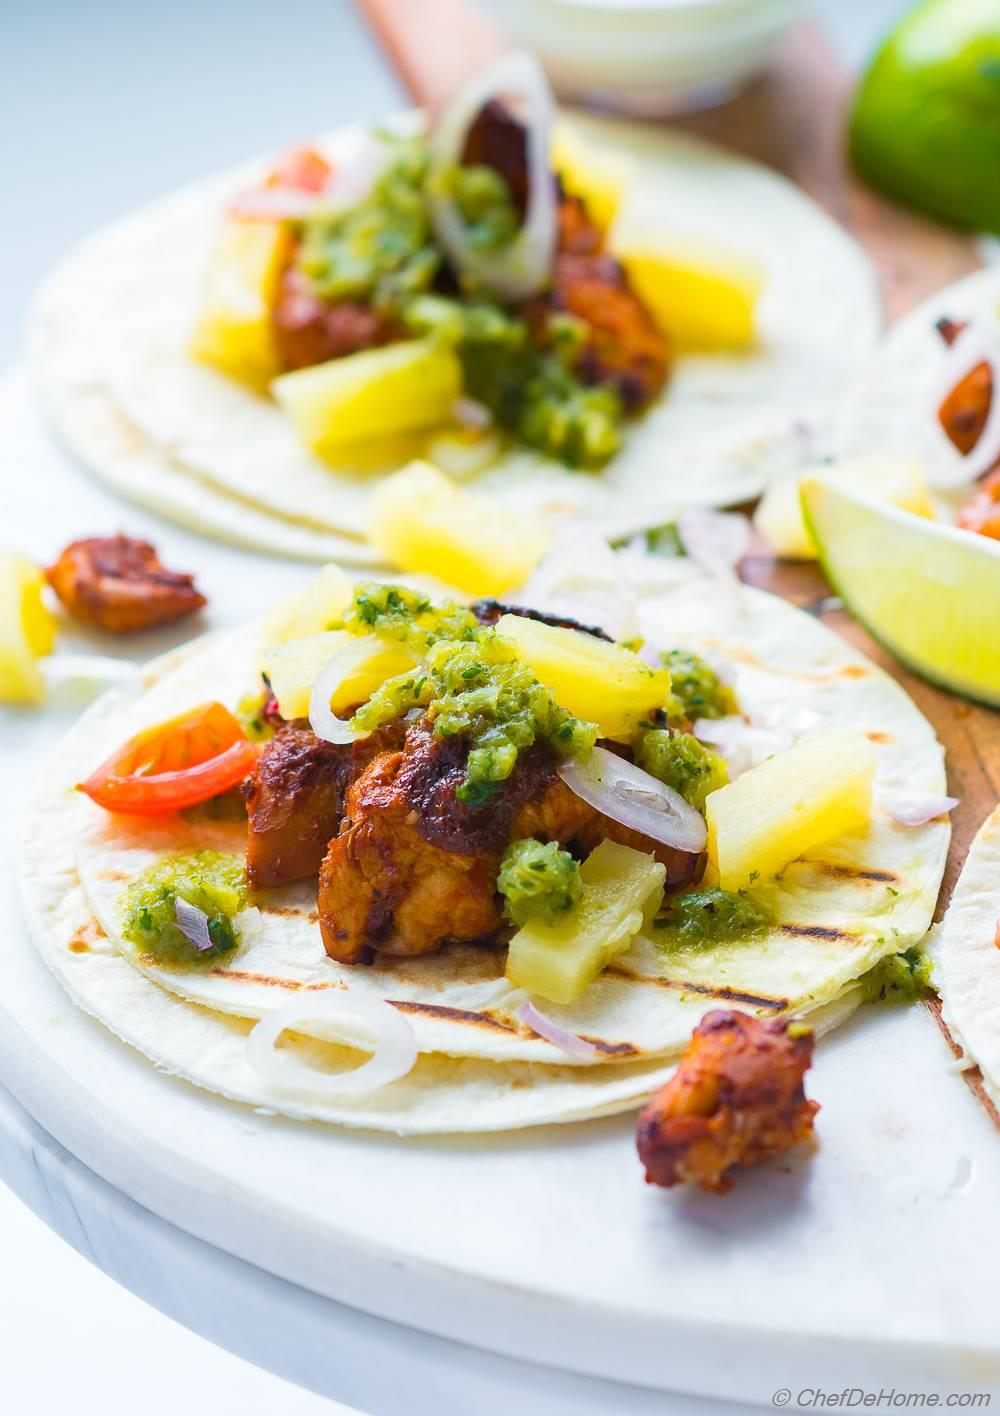 Tacos Al Pastor with pineapple and salsa verde